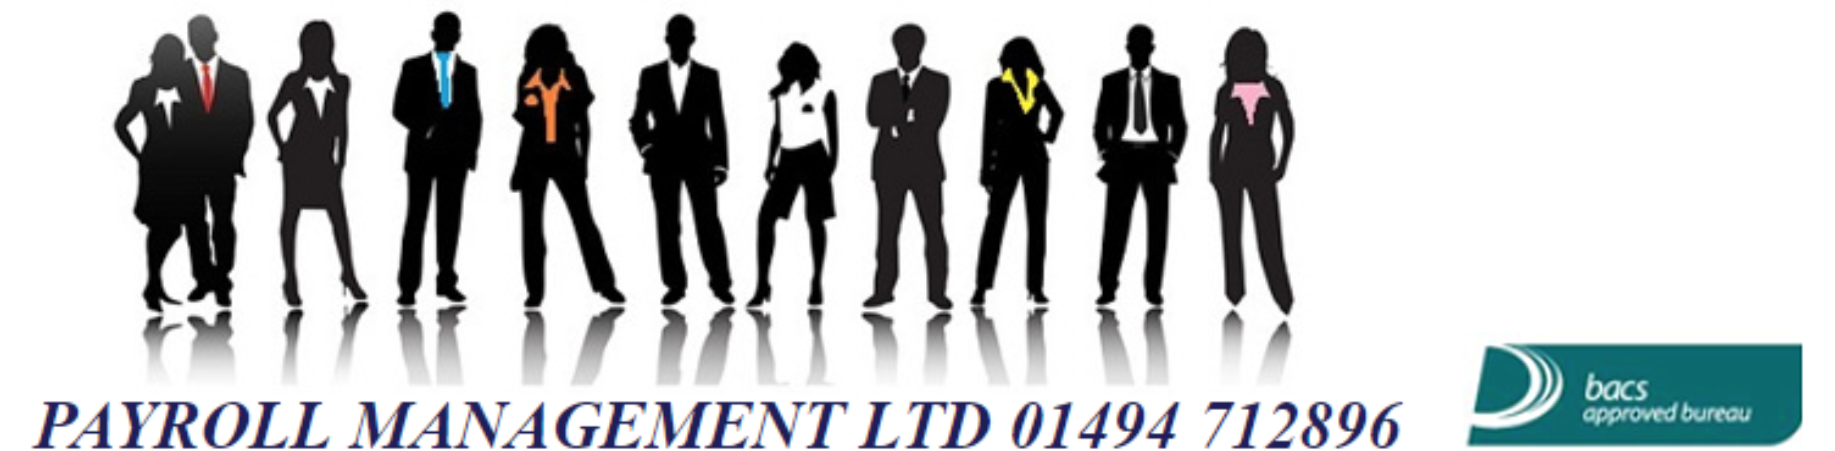 Payroll Management Ltd